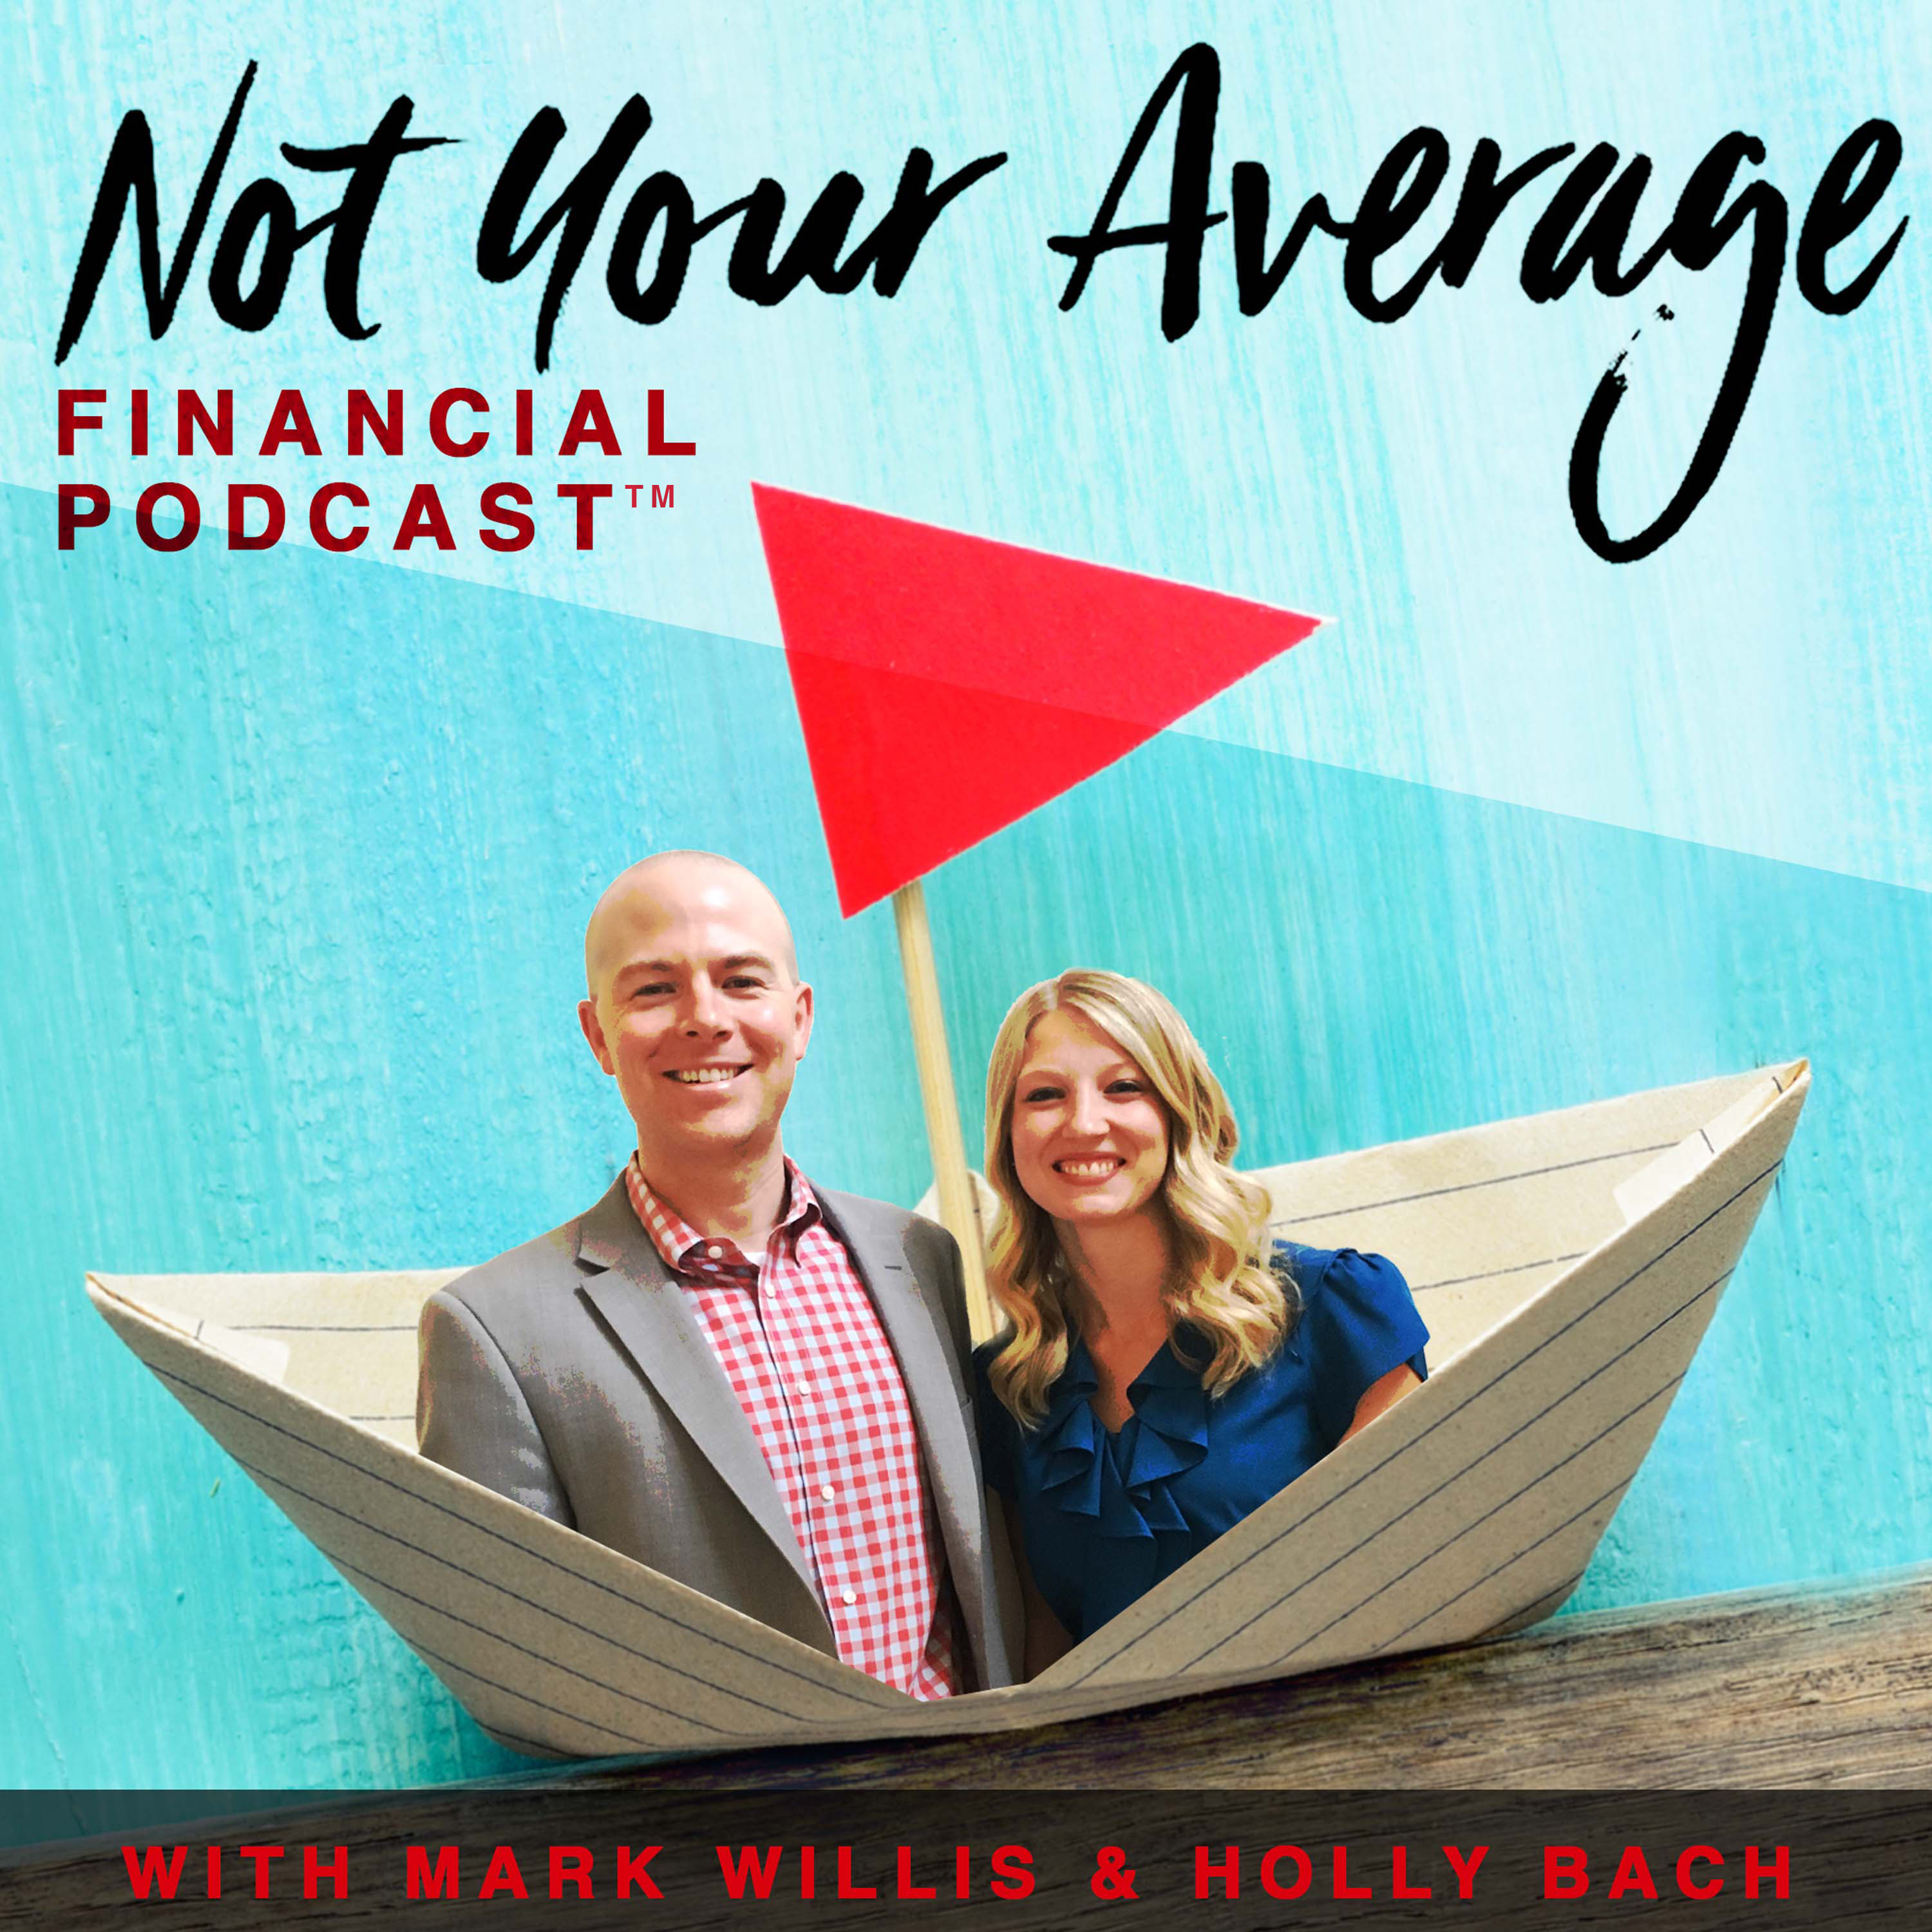 Not Your Average Financial Podcast™